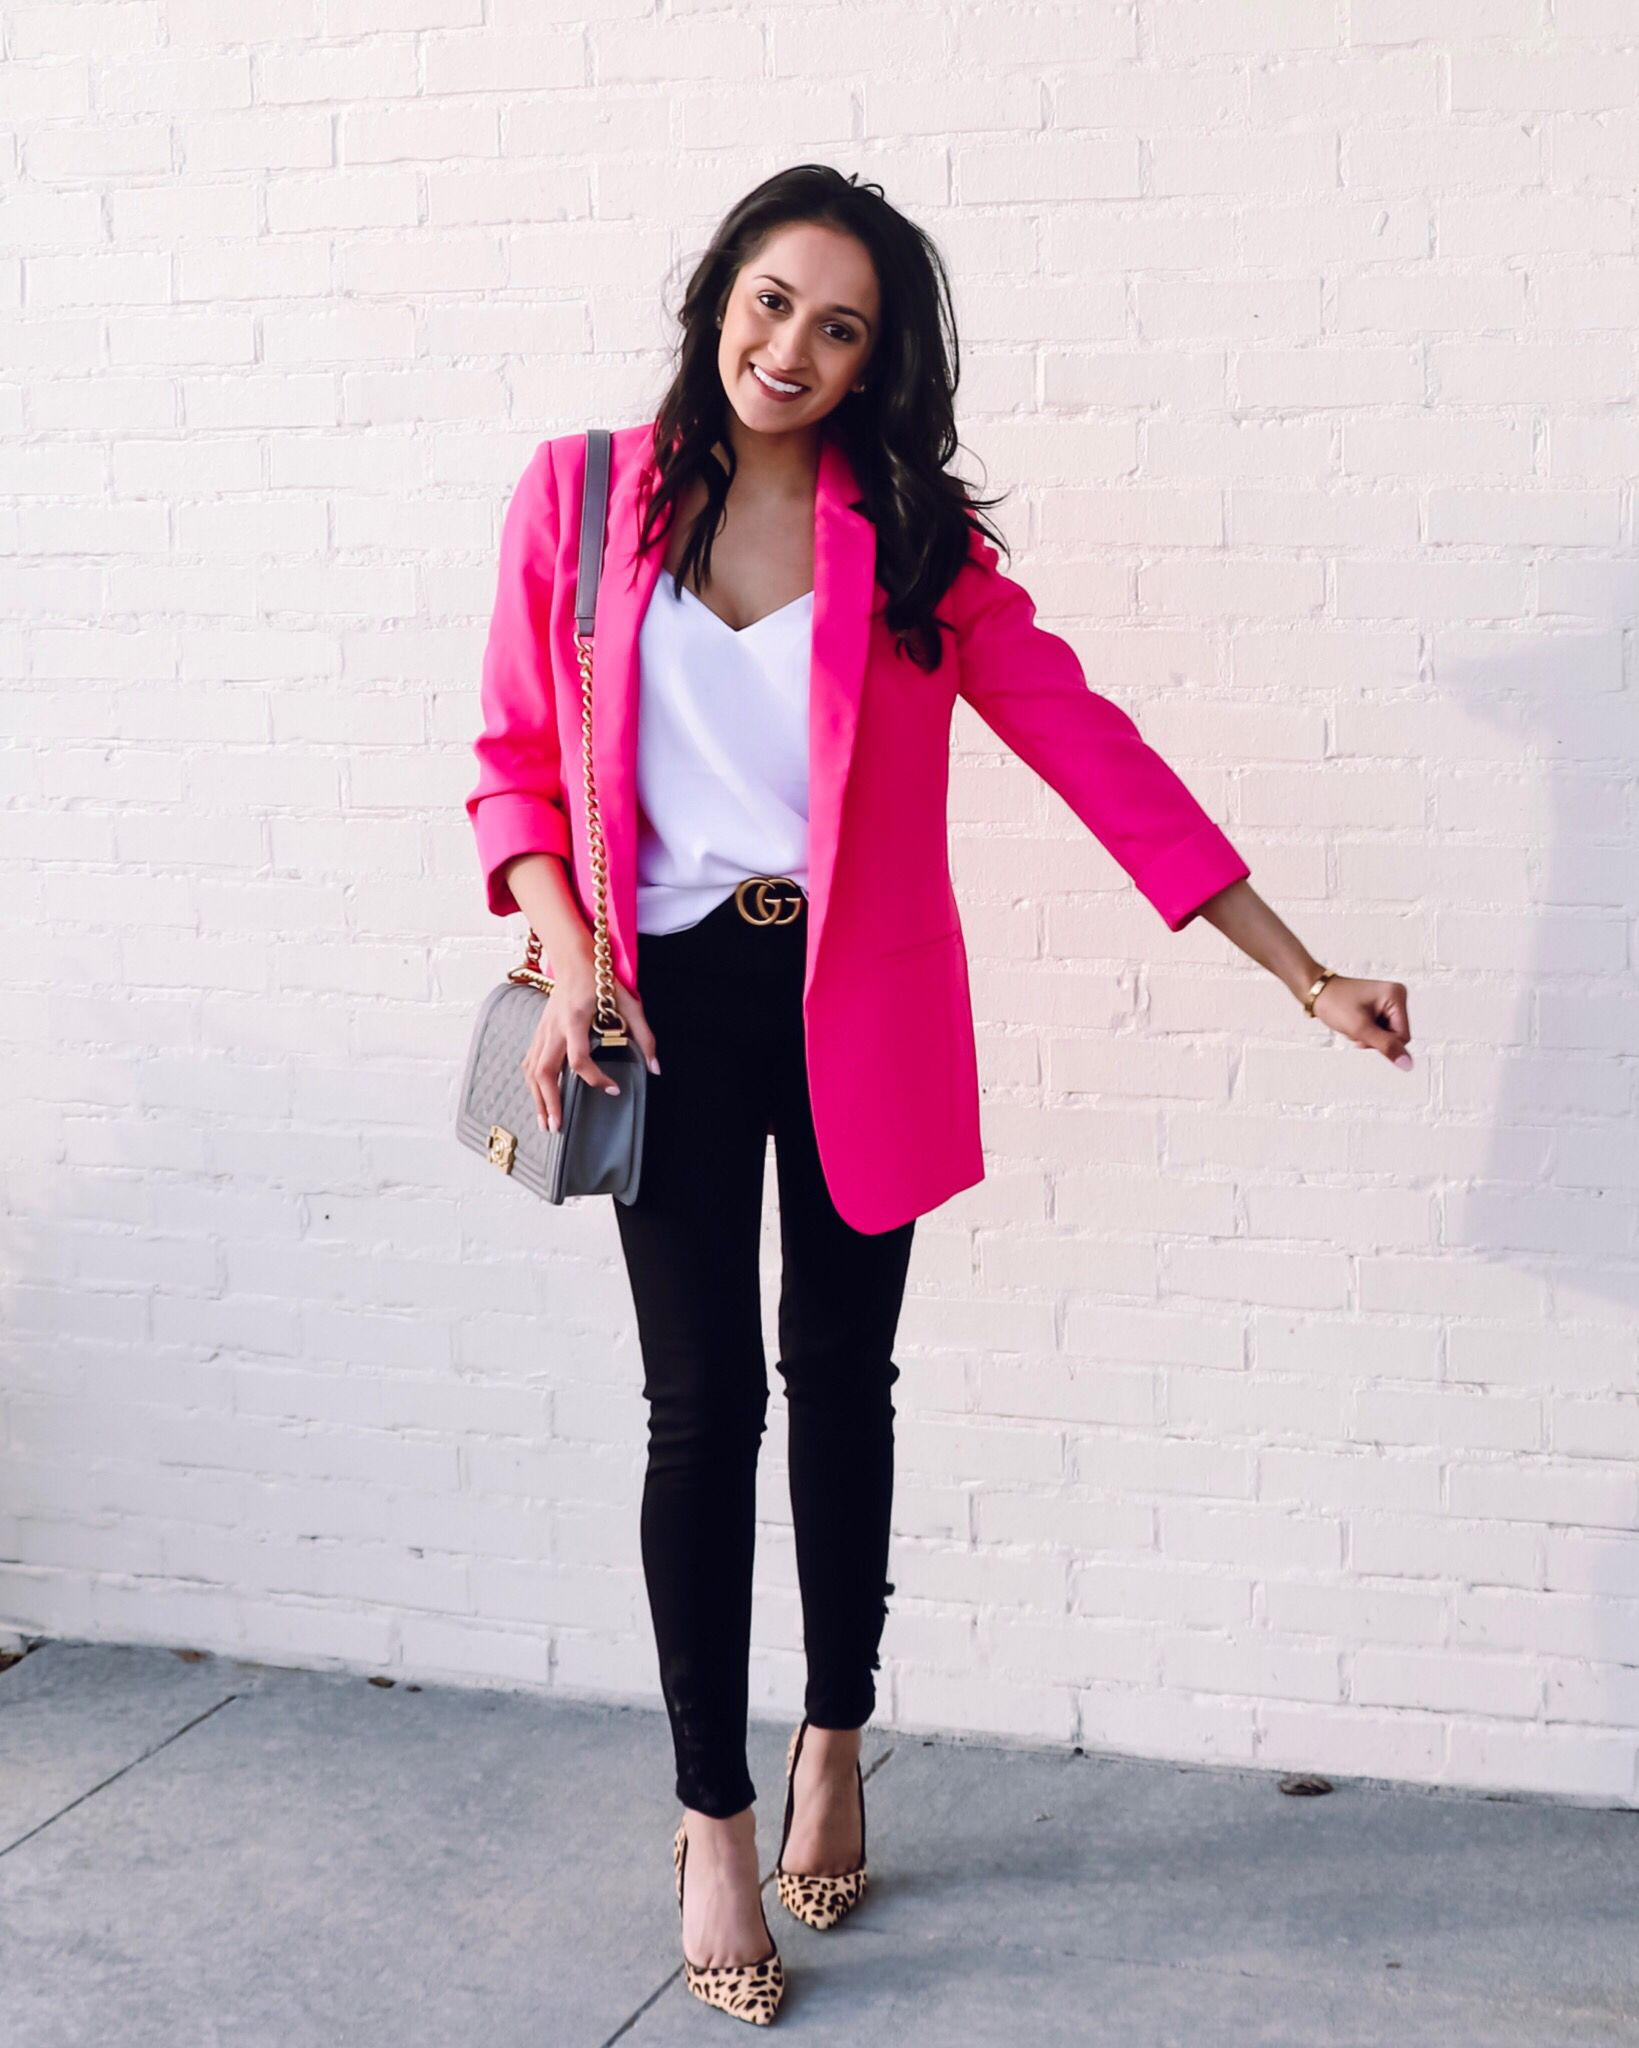 825262b7ec1ad Pink blazer outfit Pink Blazer Outfits, Work Outfits, Petite Women, Work  Attire,